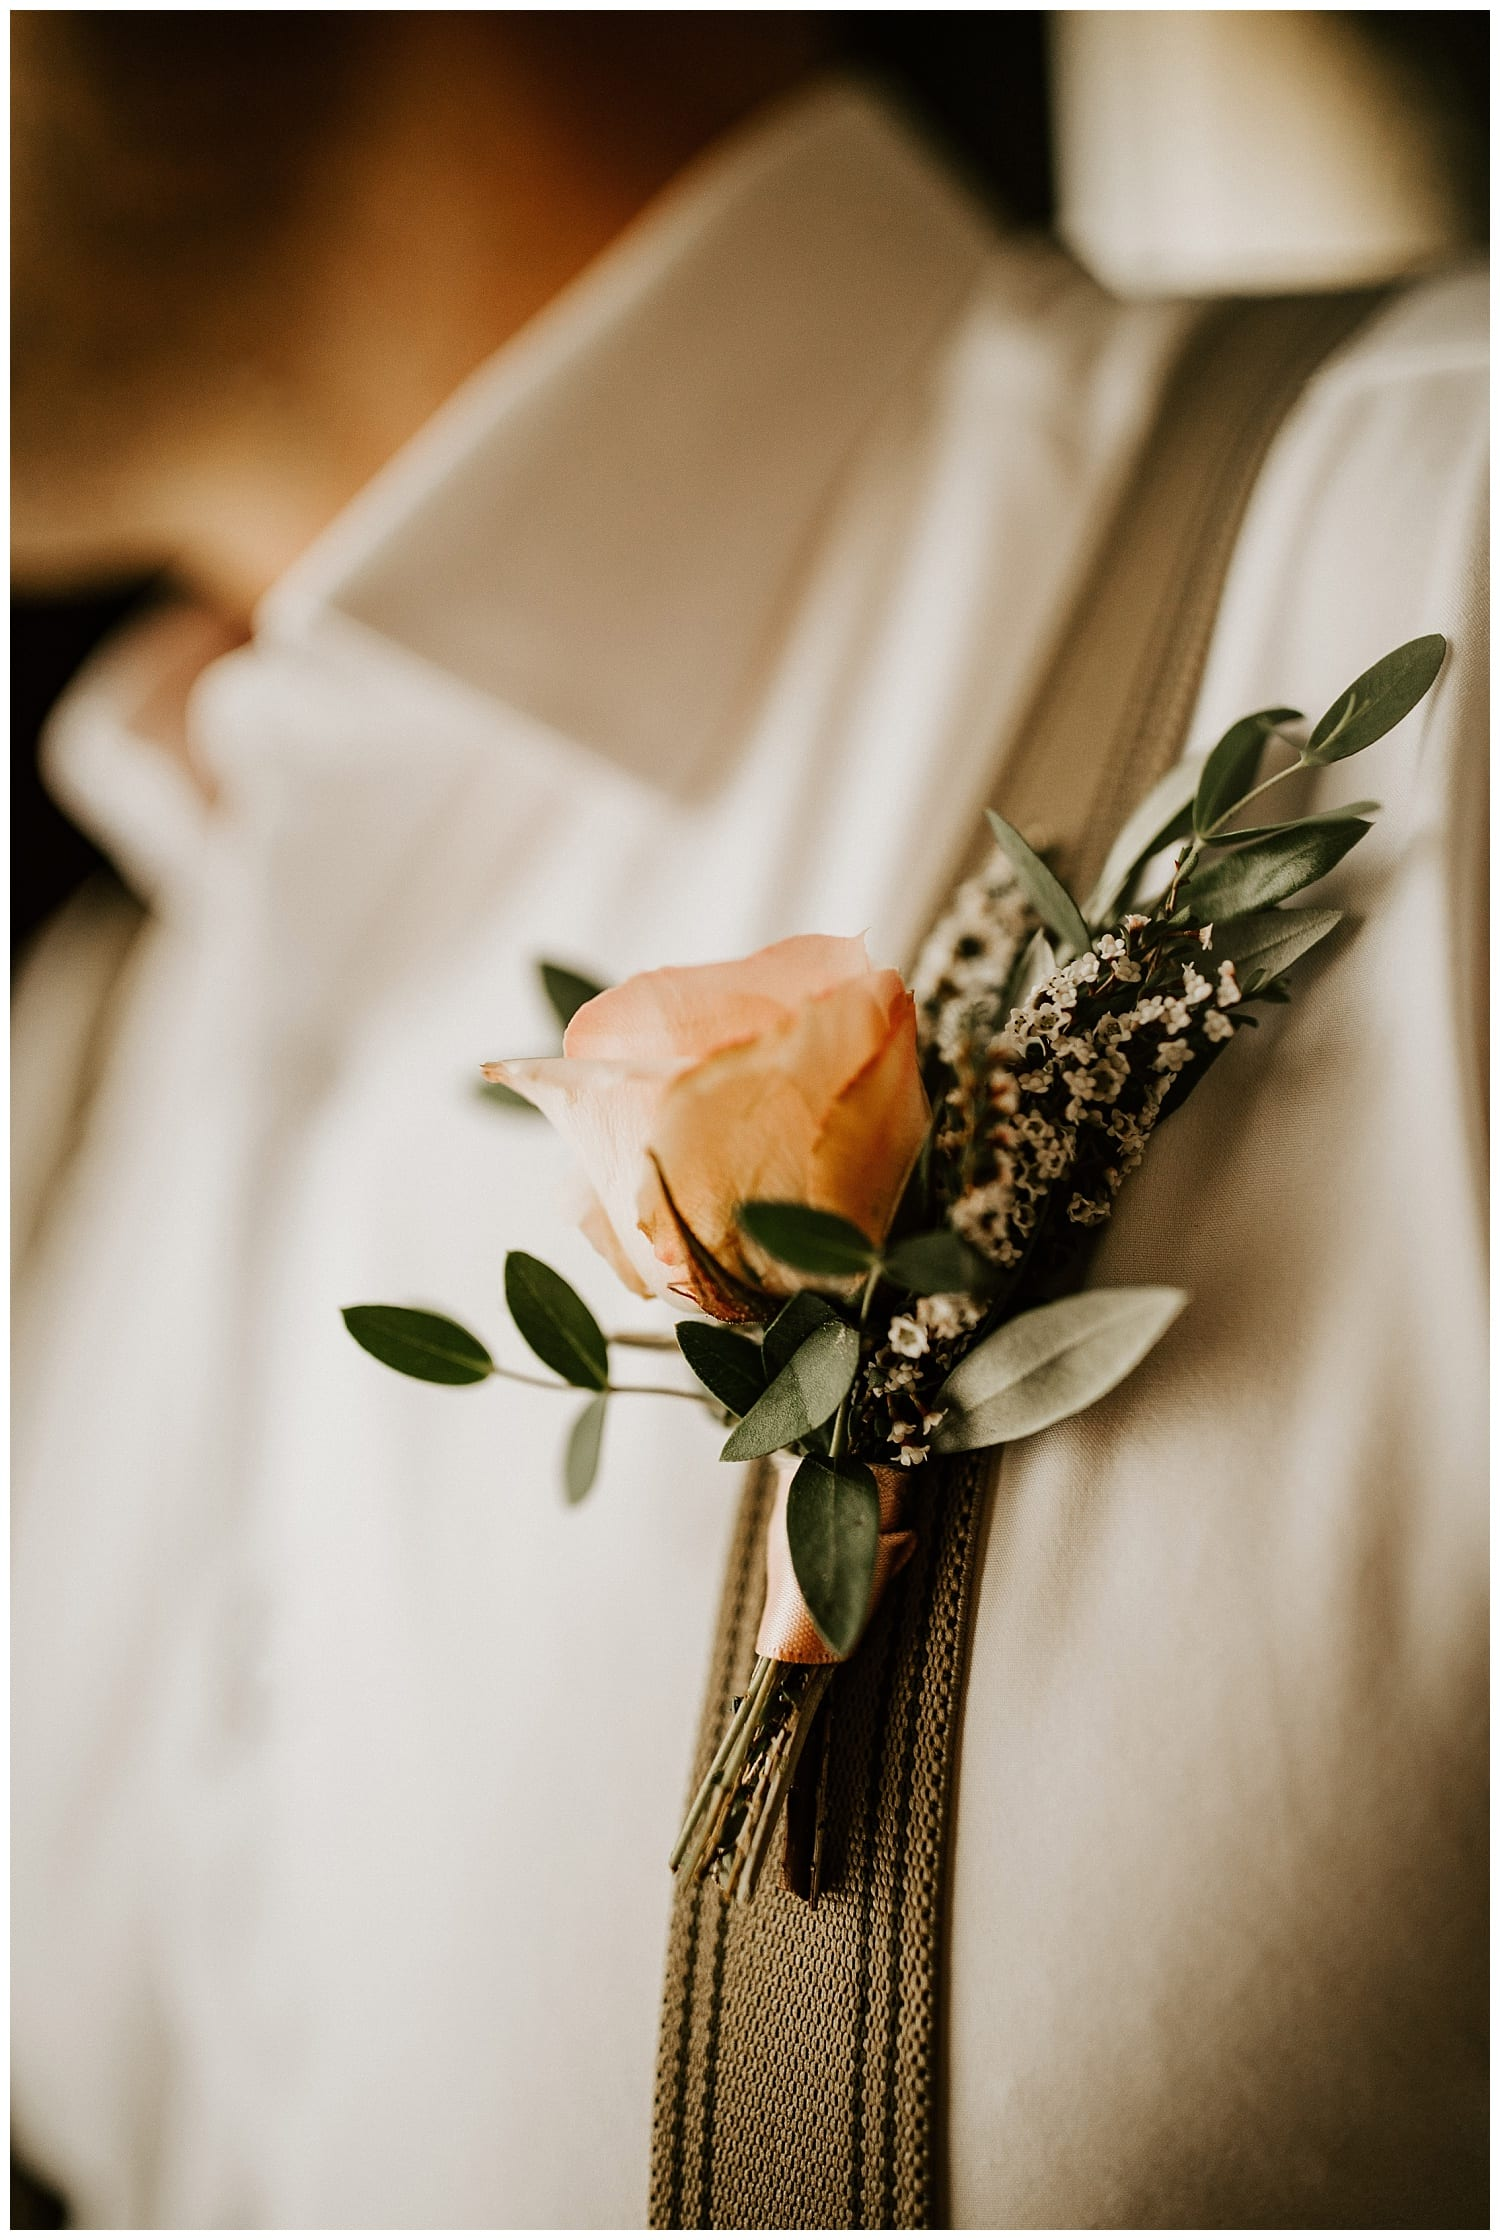 asheville elopement,asheville wedding photographer,carnegie resort wedding,carver's gap elopement,groom getting ready,groom's boutineer,knoxville wedding photographer,nashville wedding photographer,roan mountain elopement,roan mountain wedding,